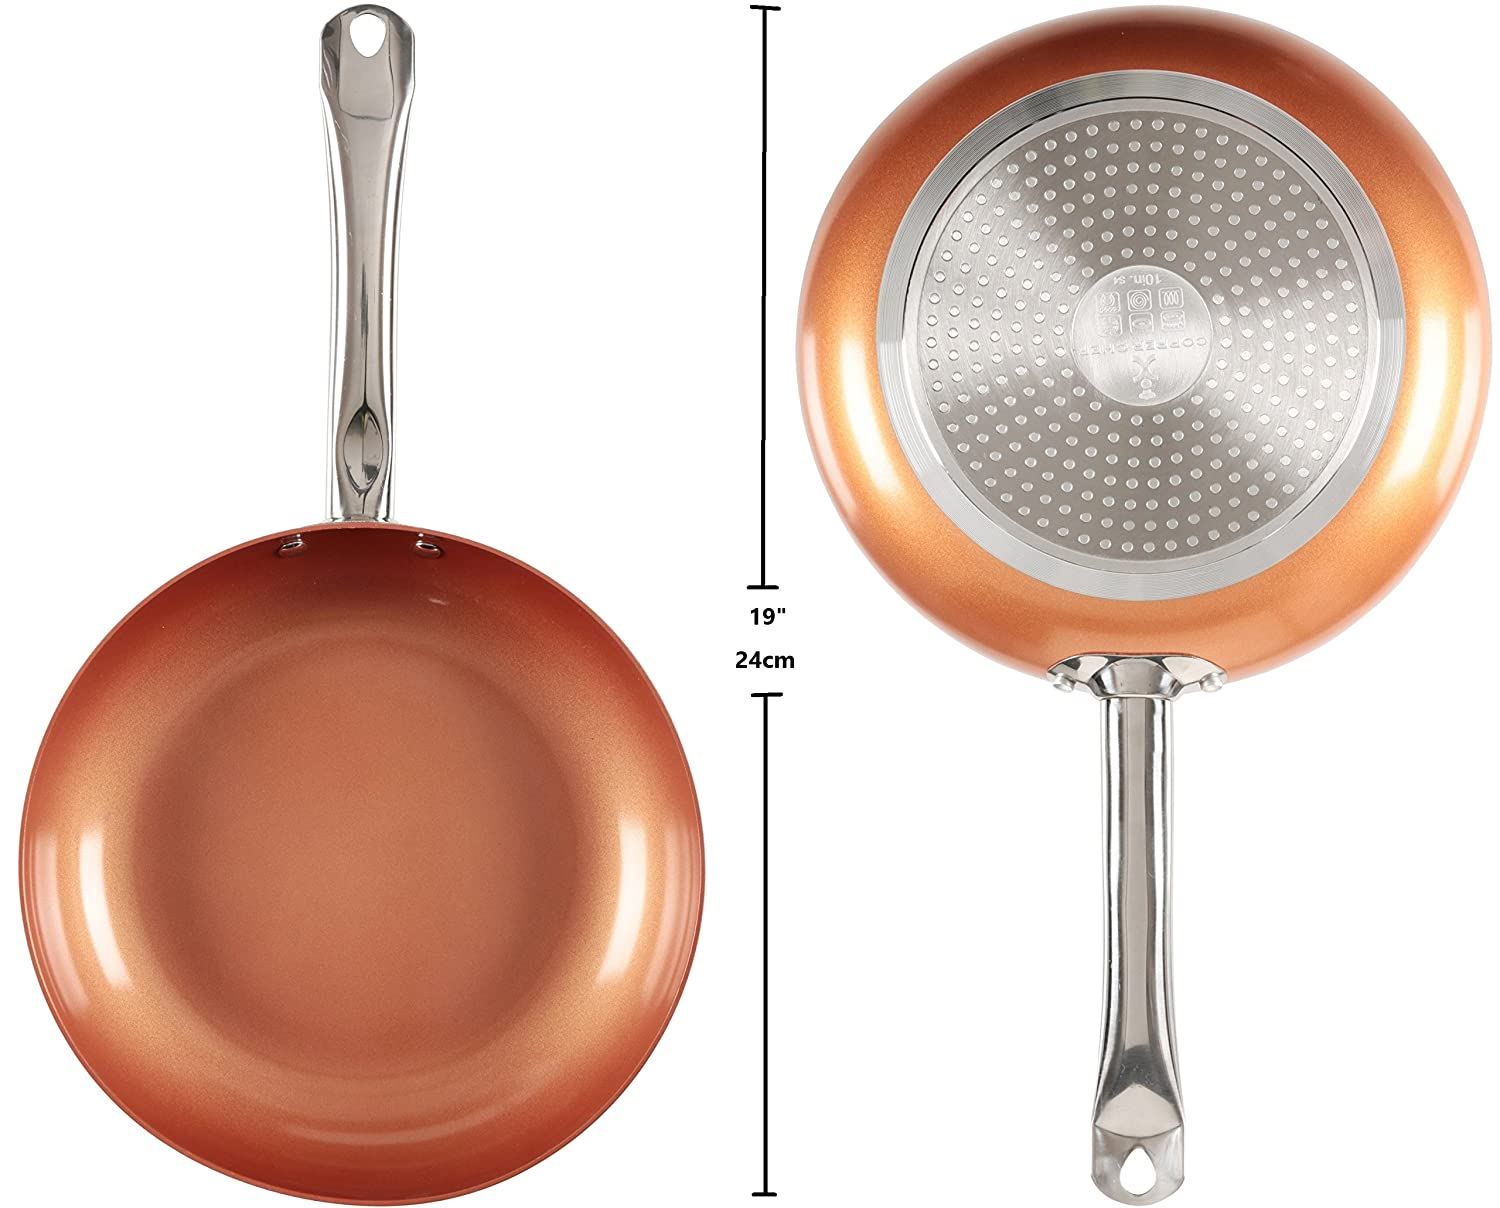 Tristar Products KC15057-02000 Round Chef Pan with Glass Lid, 10, Copper 10